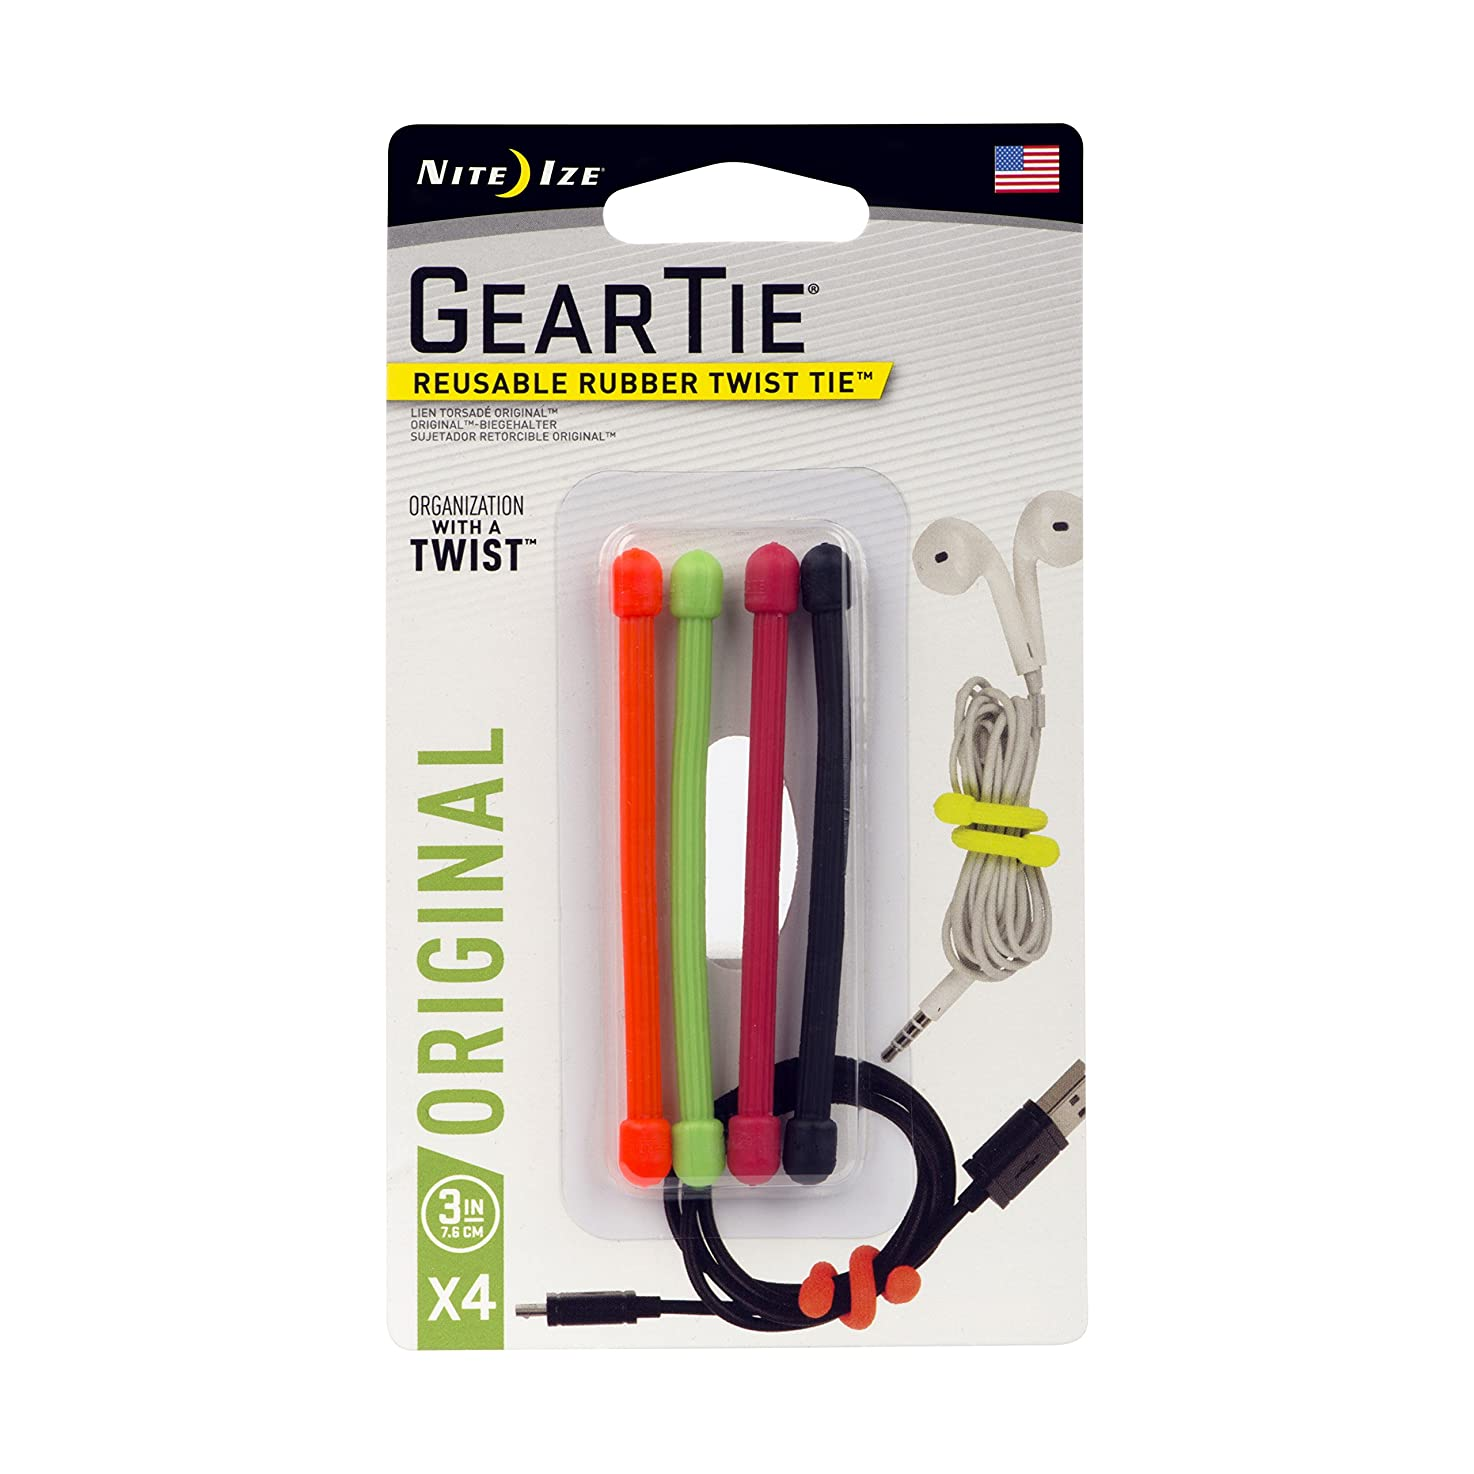 Nite Ize Original Gear Tie, Reusable Rubber Twist Tie, 3-Inch, Assorted Colors, 4 Pack, Made in the USA nnthvfruwxbhg8